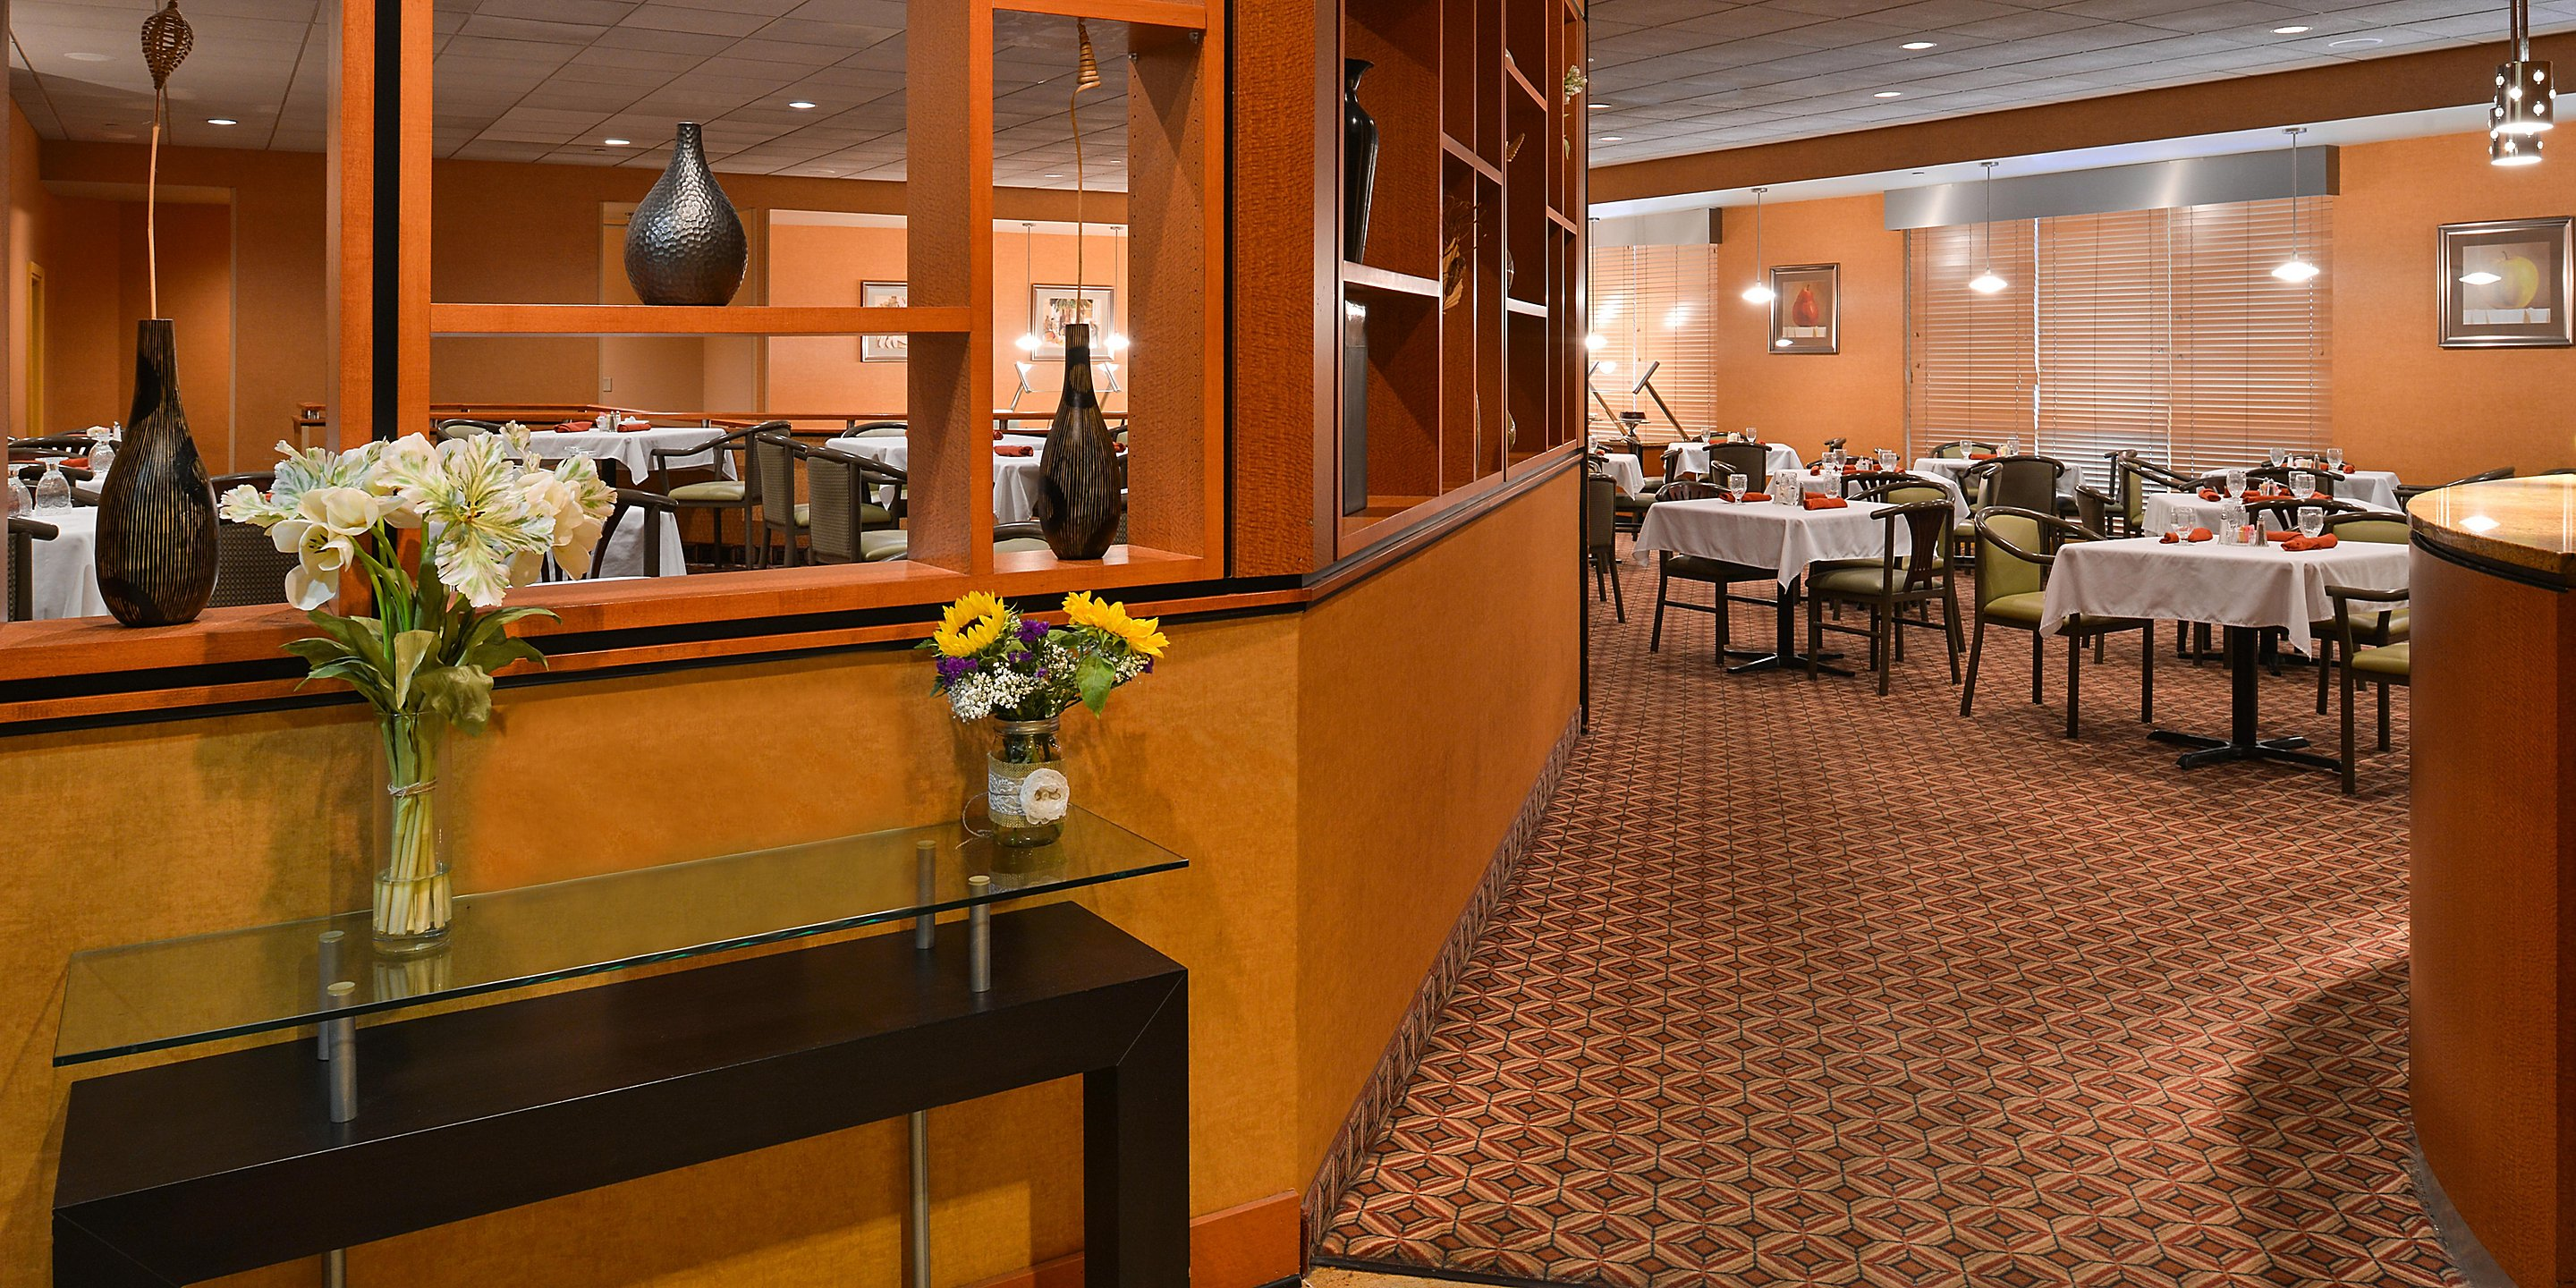 https://www.hotelsbyday.com/_data/default-hotel_image/3/16995/holiday-inn-martinsburg-4163463237-2x1.jpeg